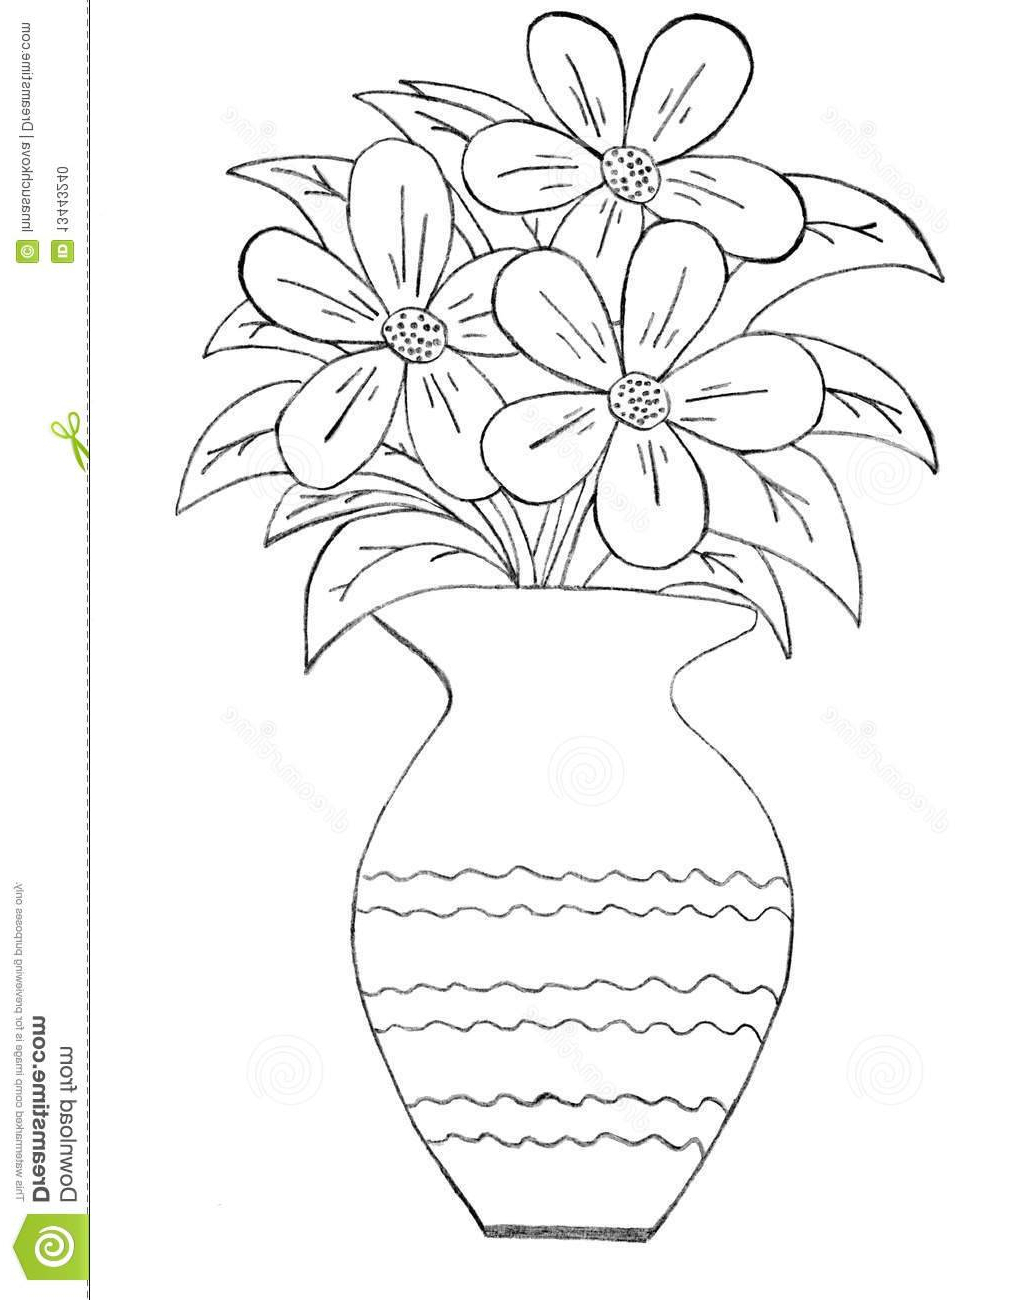 1035x1300 How To Draw A Flower Vase Step By Step Easy Drawings Of Flowers In